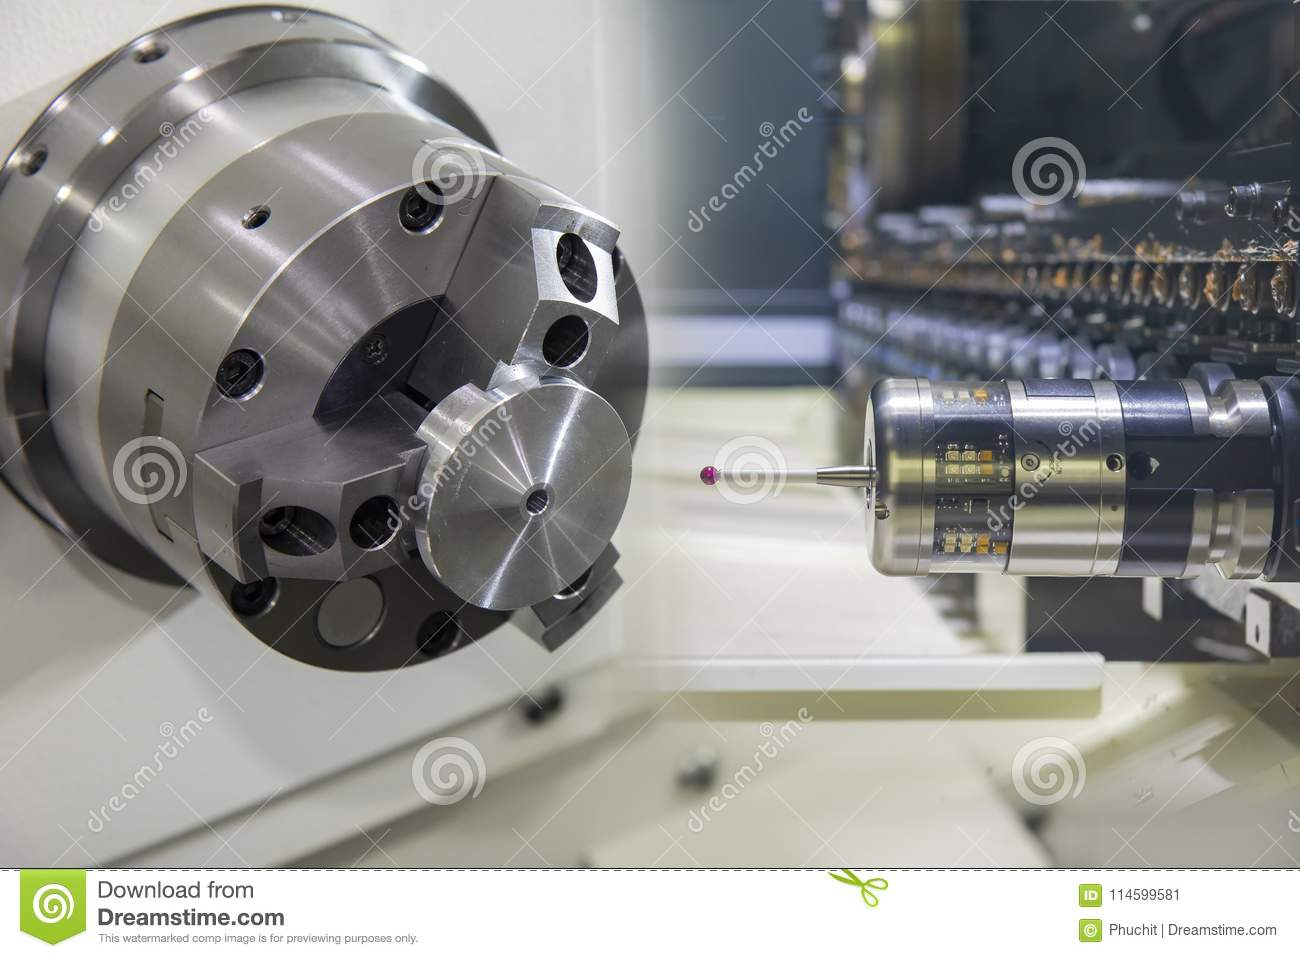 Abstract Scene Of The CNC Turning Or Lathe Machine Stock Image ...